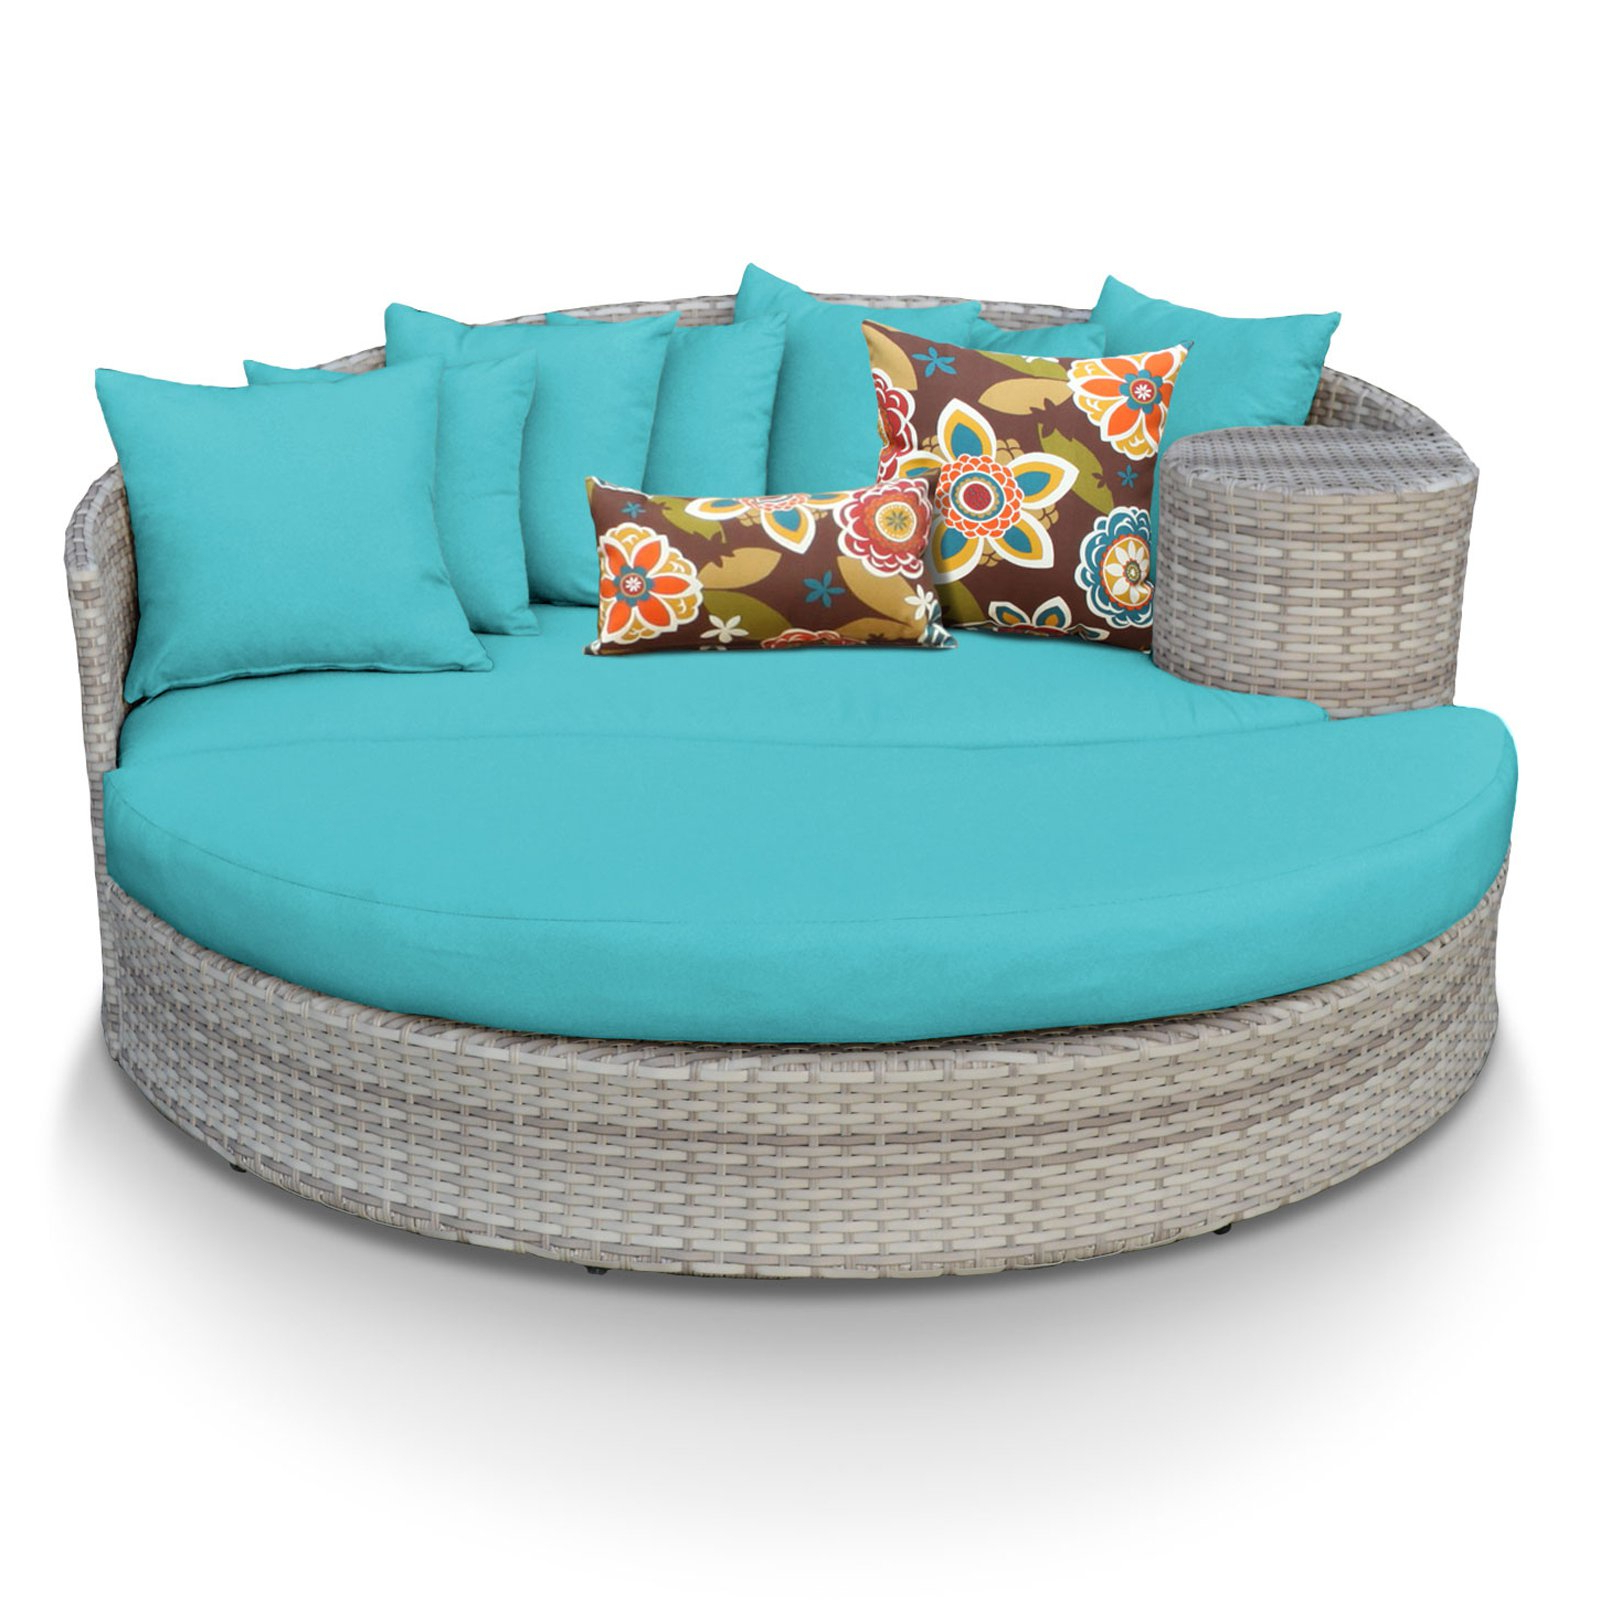 Tk Classics Fairmont All Weather Wicker Outdoor Sun Bed Inside 2019 Falmouth Patio Daybeds With Cushions (View 15 of 20)